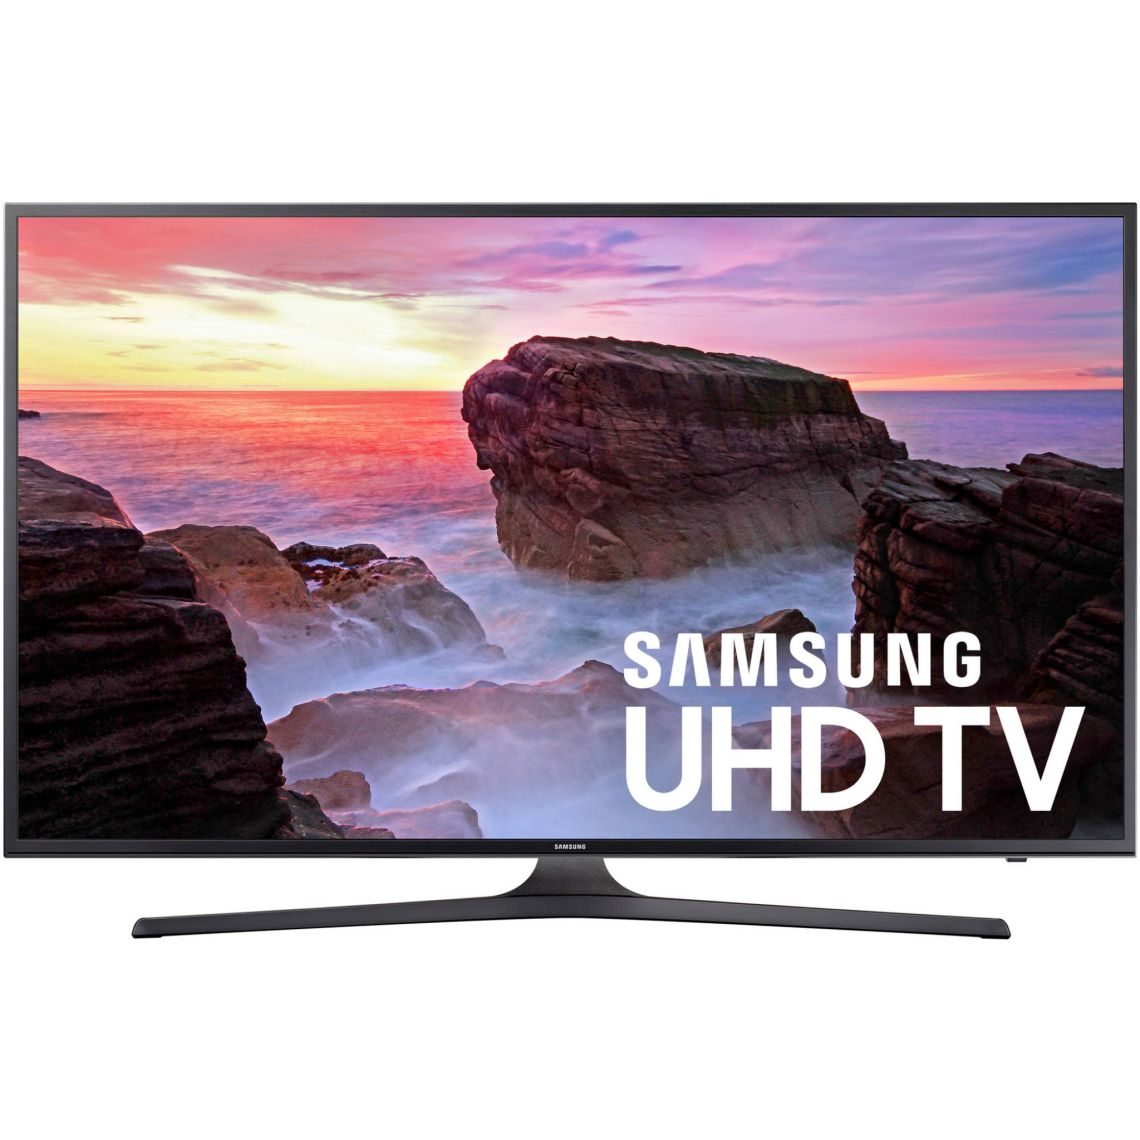 "SAMSUNG 75"" Class 4K (2160P) Ultra HD Smart LED TV (UN75MU6300FXZA) - Walmart.com"